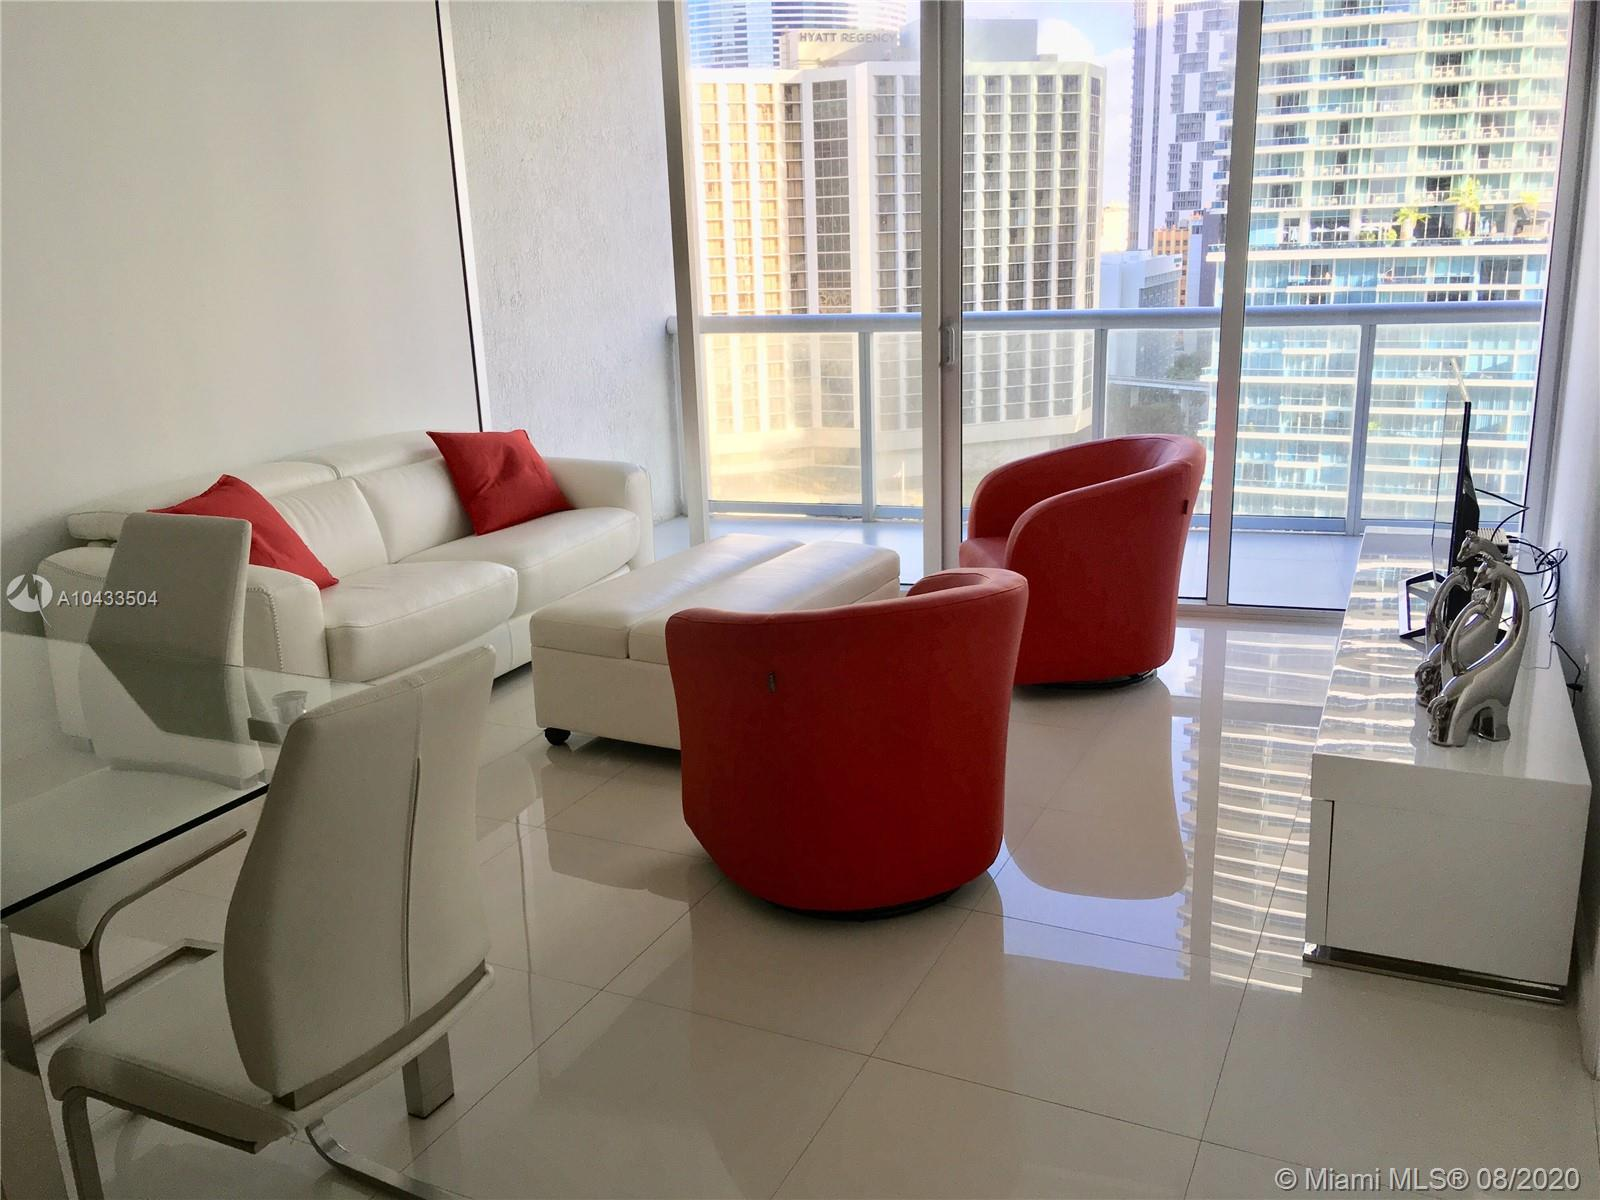 Welcome Home! Relax and Enjoy your stay in this gorgeous all-white modern 1 bedroom apartment located at the luxury Icon Brickell Tower three, where the W hotel is also located. CAN BE RENTED DAILY, WEEKLY OR MONTHLY. We provide our guests all they need to have a pampering experience (towels, bed sheets, glassware, cooking utensils, and more). Free Internet and more. Valet parking is included only in monthly rentals. Contact Us for weekly and daily rates.ALSA Miami Stays will be glad to make your stay special and unique.***Prices may vary depending on the season and taxes may apply + Cleaning Fee